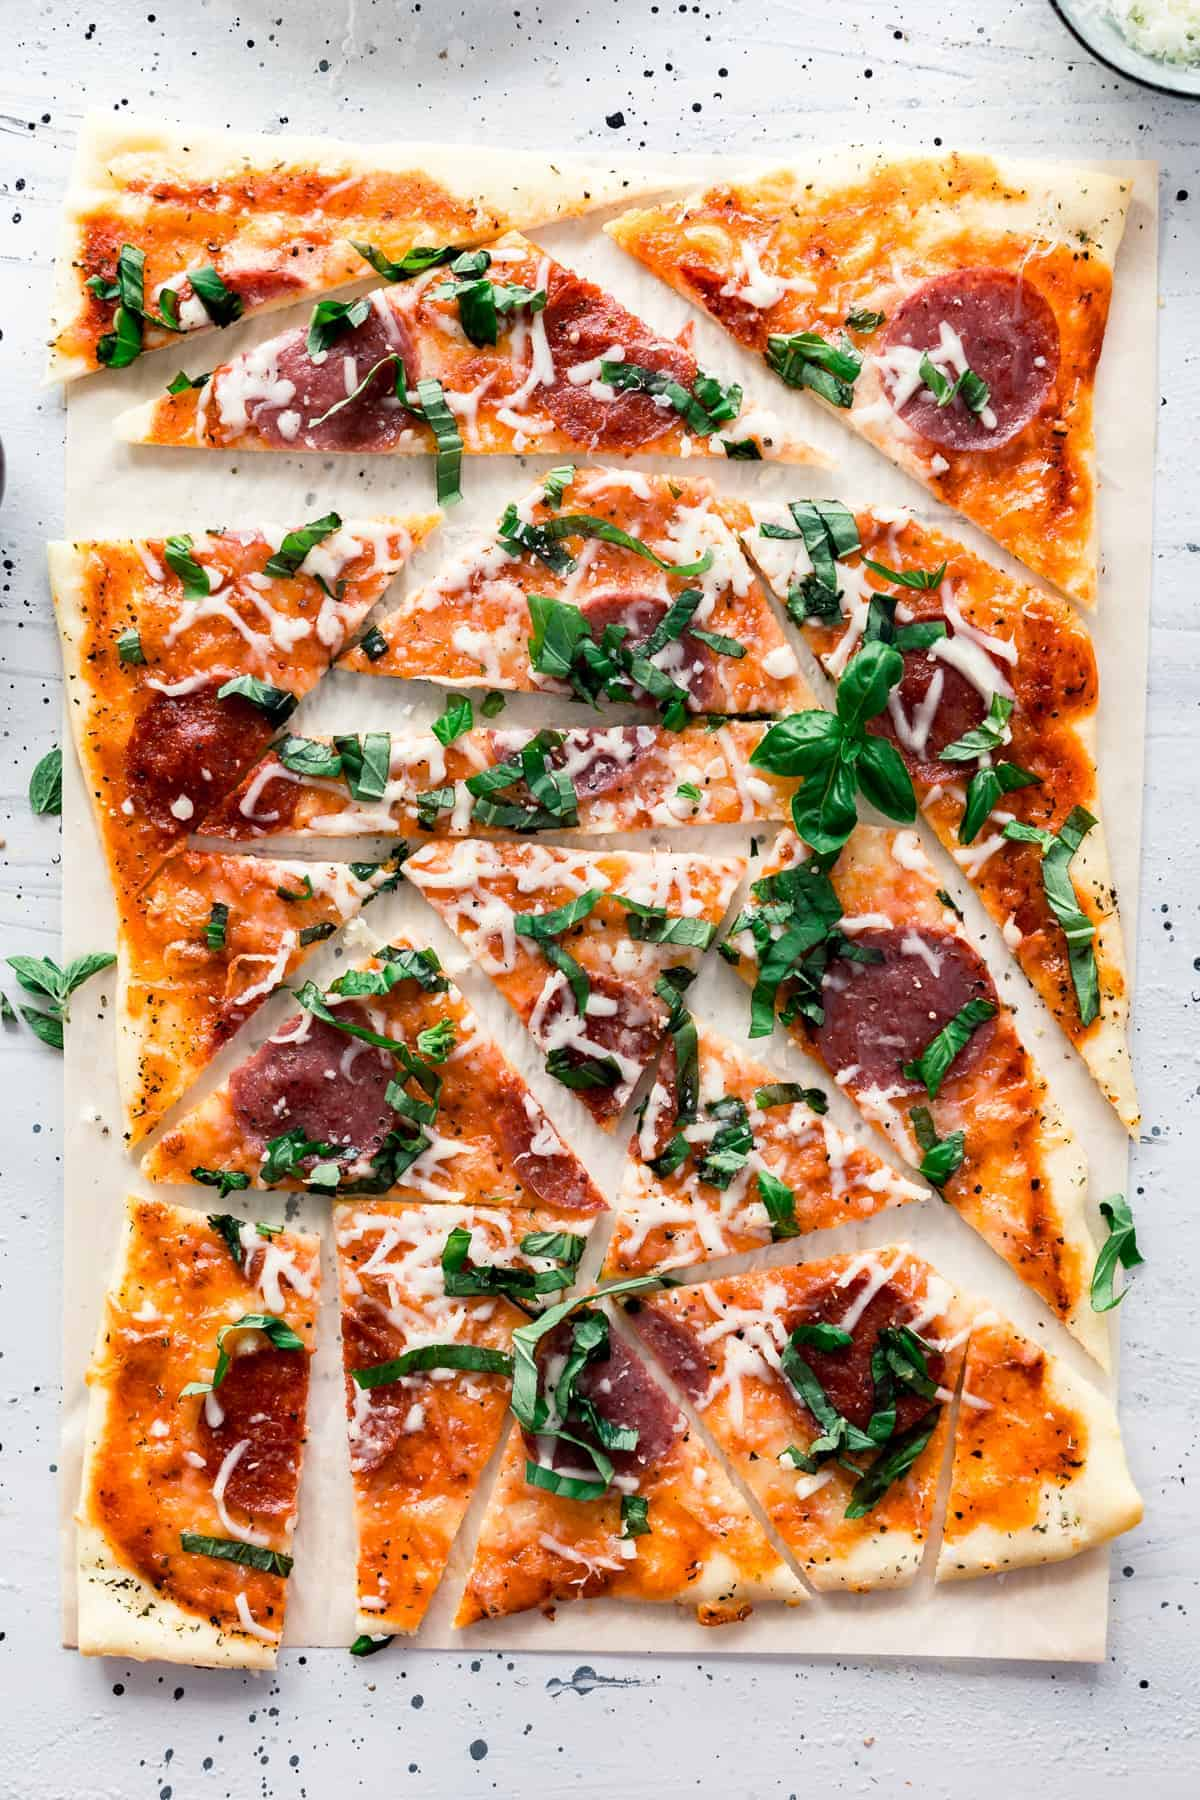 Meaty Margherita Pizza made with the traditional tomatoes, cheese, and basil but with added pepperoni and salami to make it one crowd pleasing pizza done in only 30 minutes.